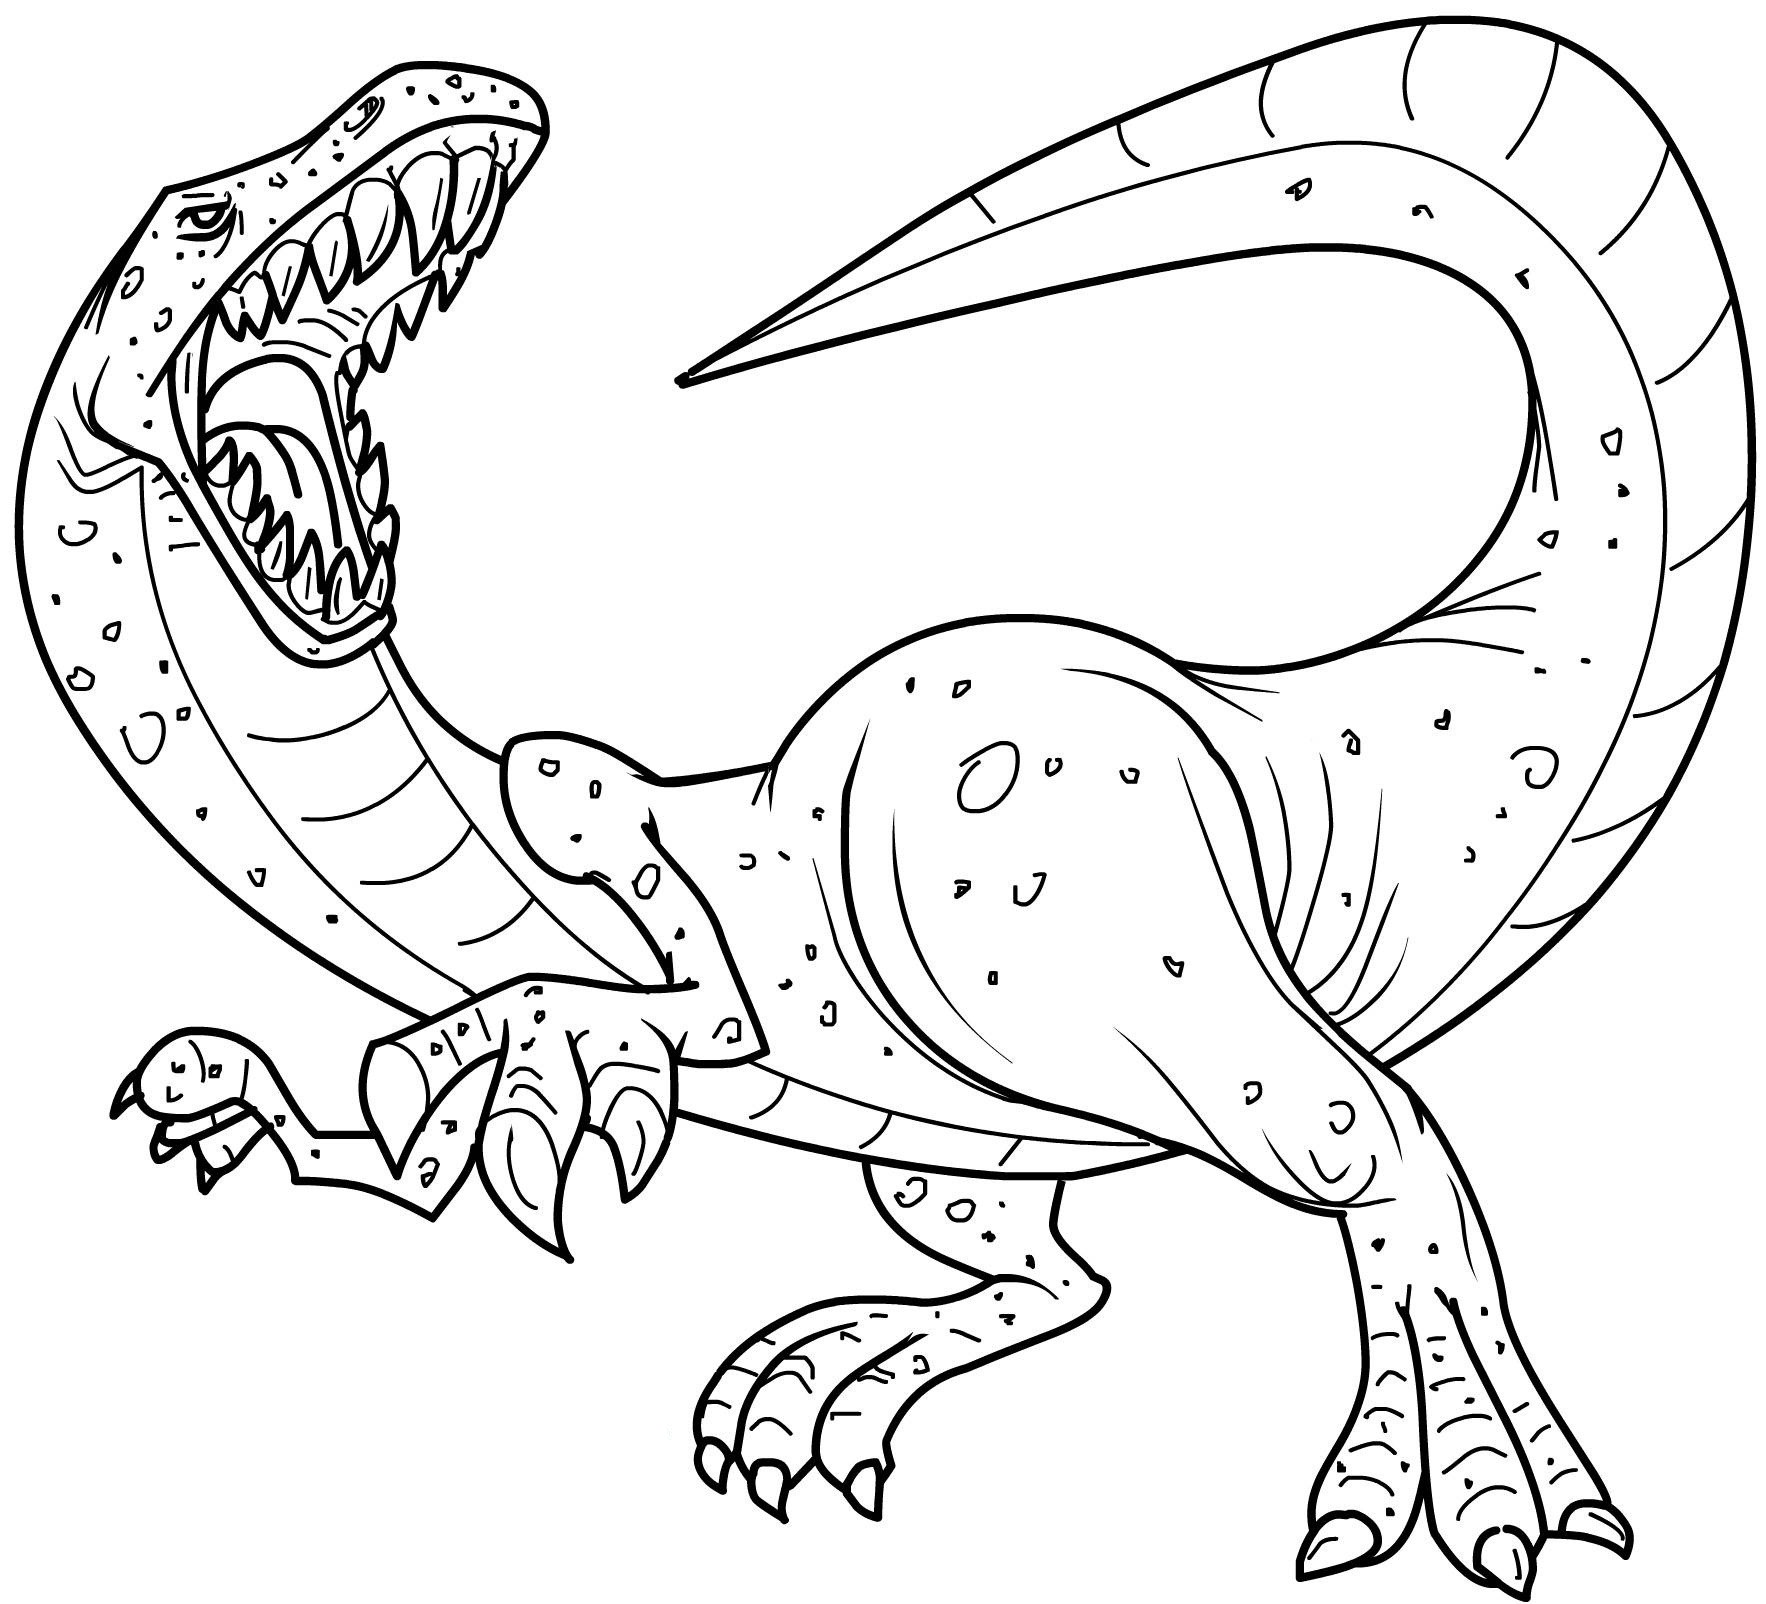 dino coloring page dinosaurs coloring pages collection free coloring sheets coloring dino page